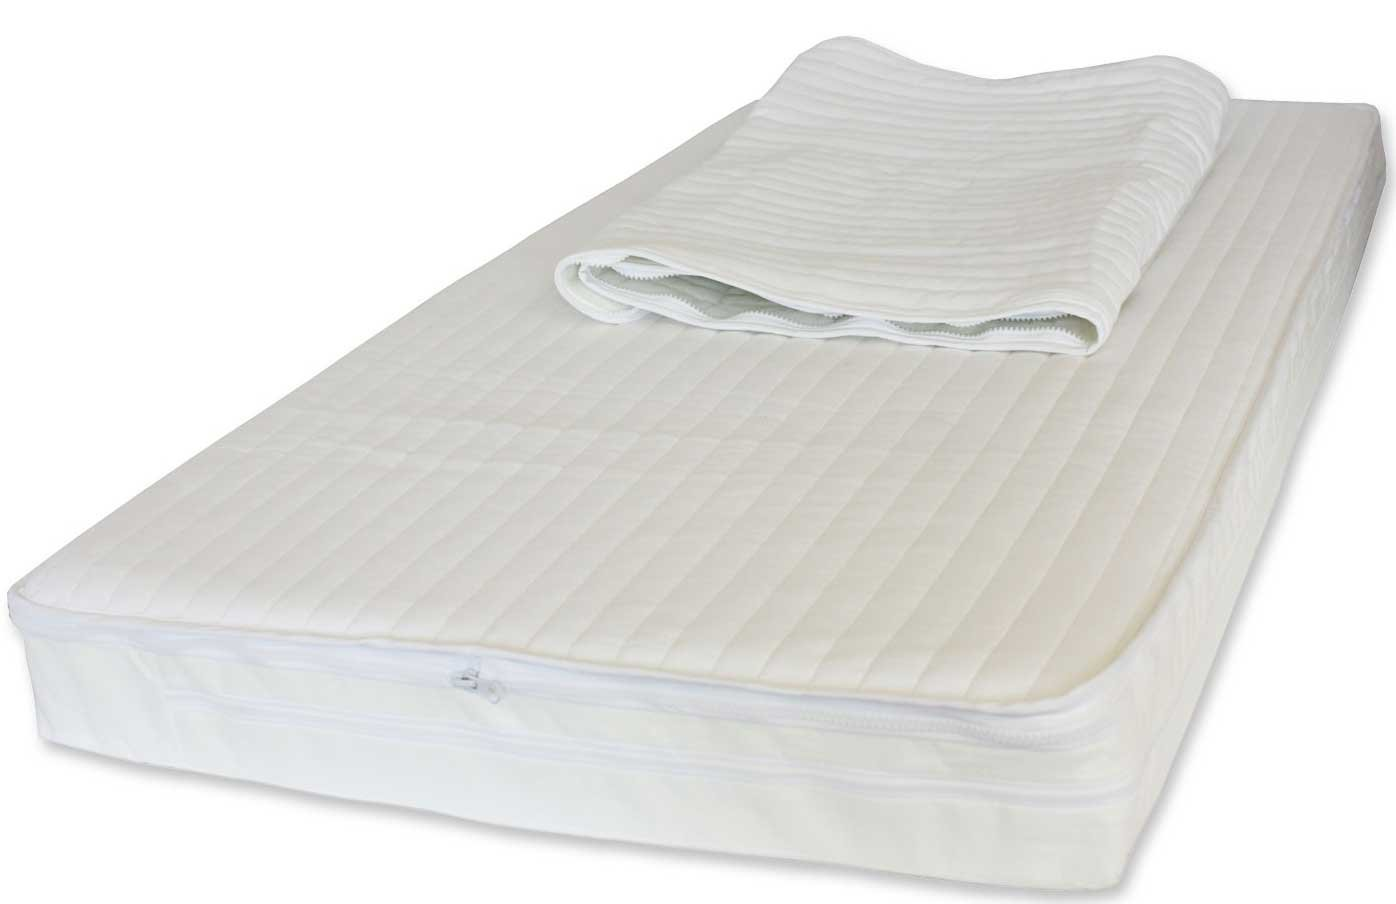 117 x 54 x 10 cm NightyNite® Superstart Sprung Cot Mattress with Two Interchangeable Microfibre Toppers and Waterproof Protection SSCGM1